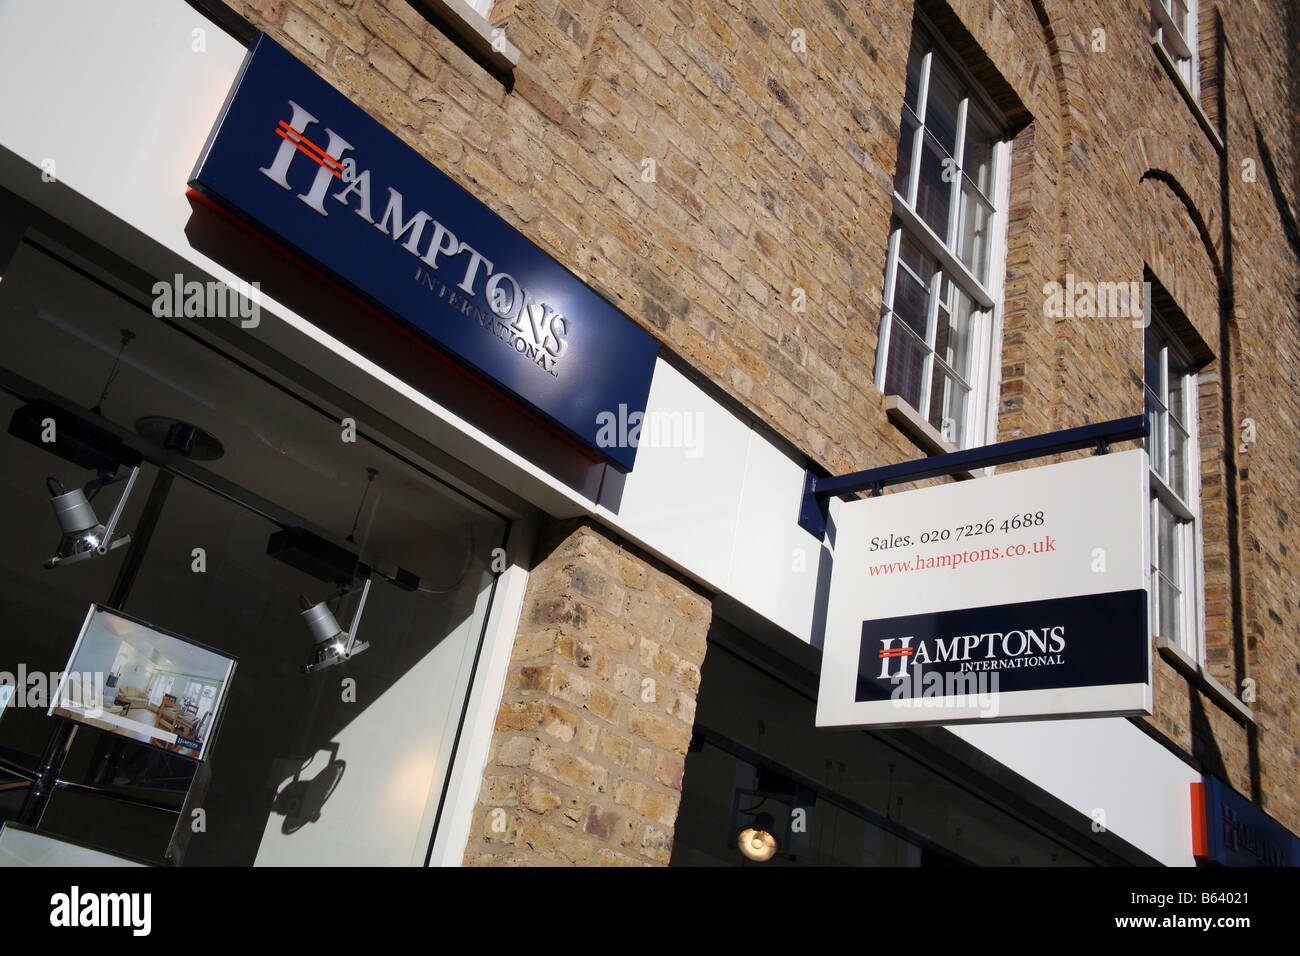 Branch of Hamptons estate agents, London - Stock Image